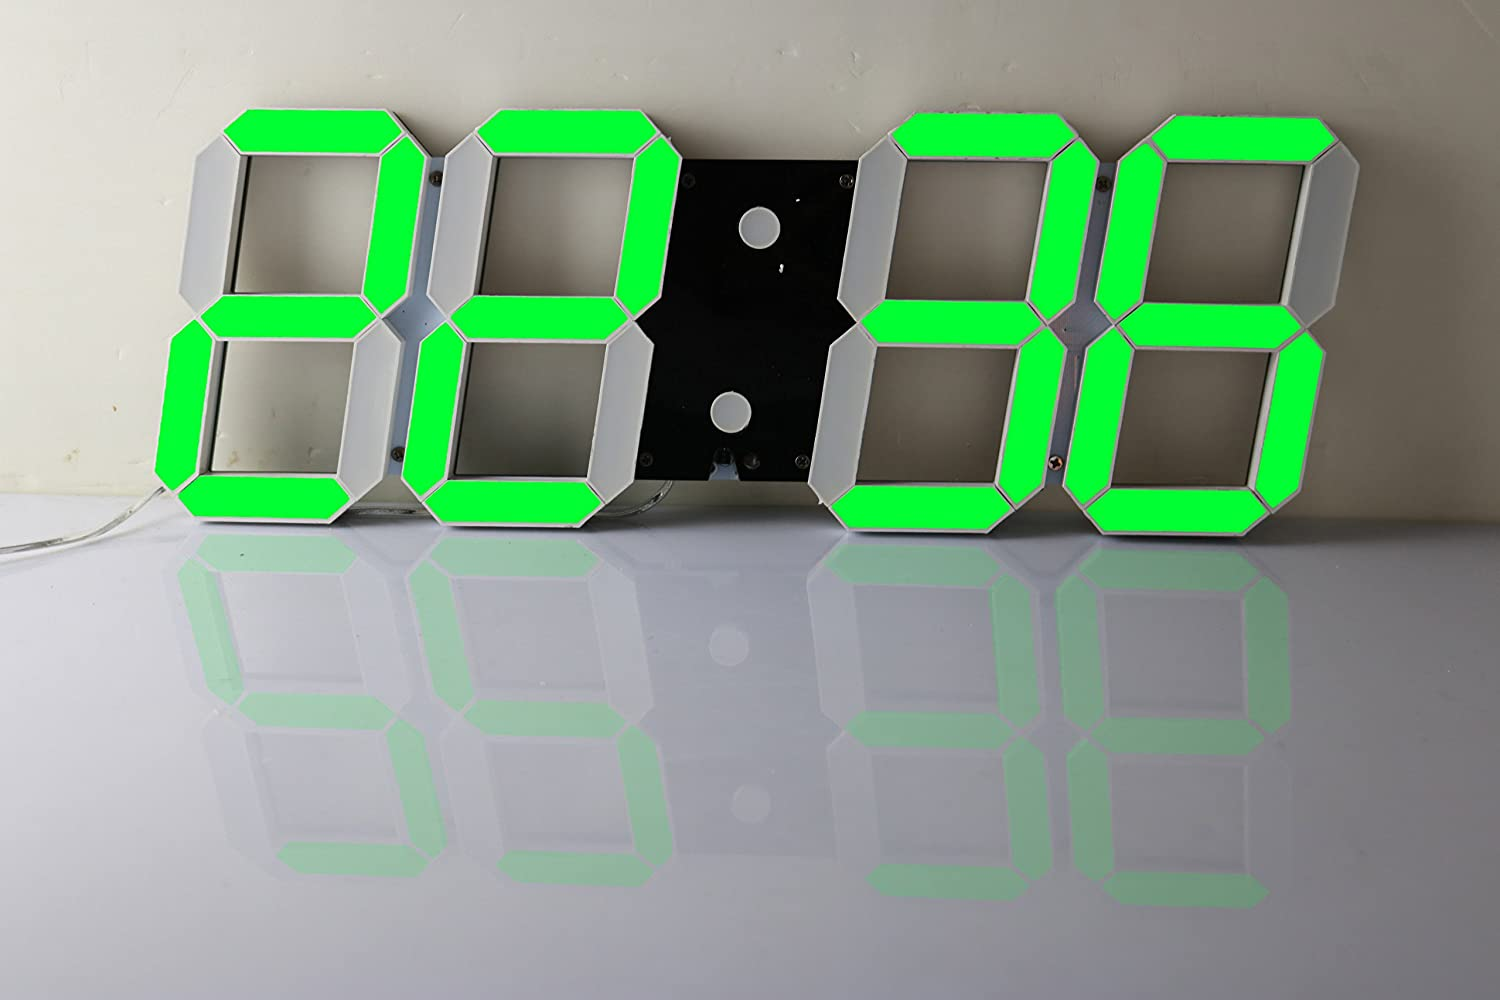 Bestland large led digital wall clock remote control jumbo larger bestland large led digital wall clock remote control jumbo larger numbers 3d design alarm clock with thermometer calendar snooze alarm countdown amipublicfo Images